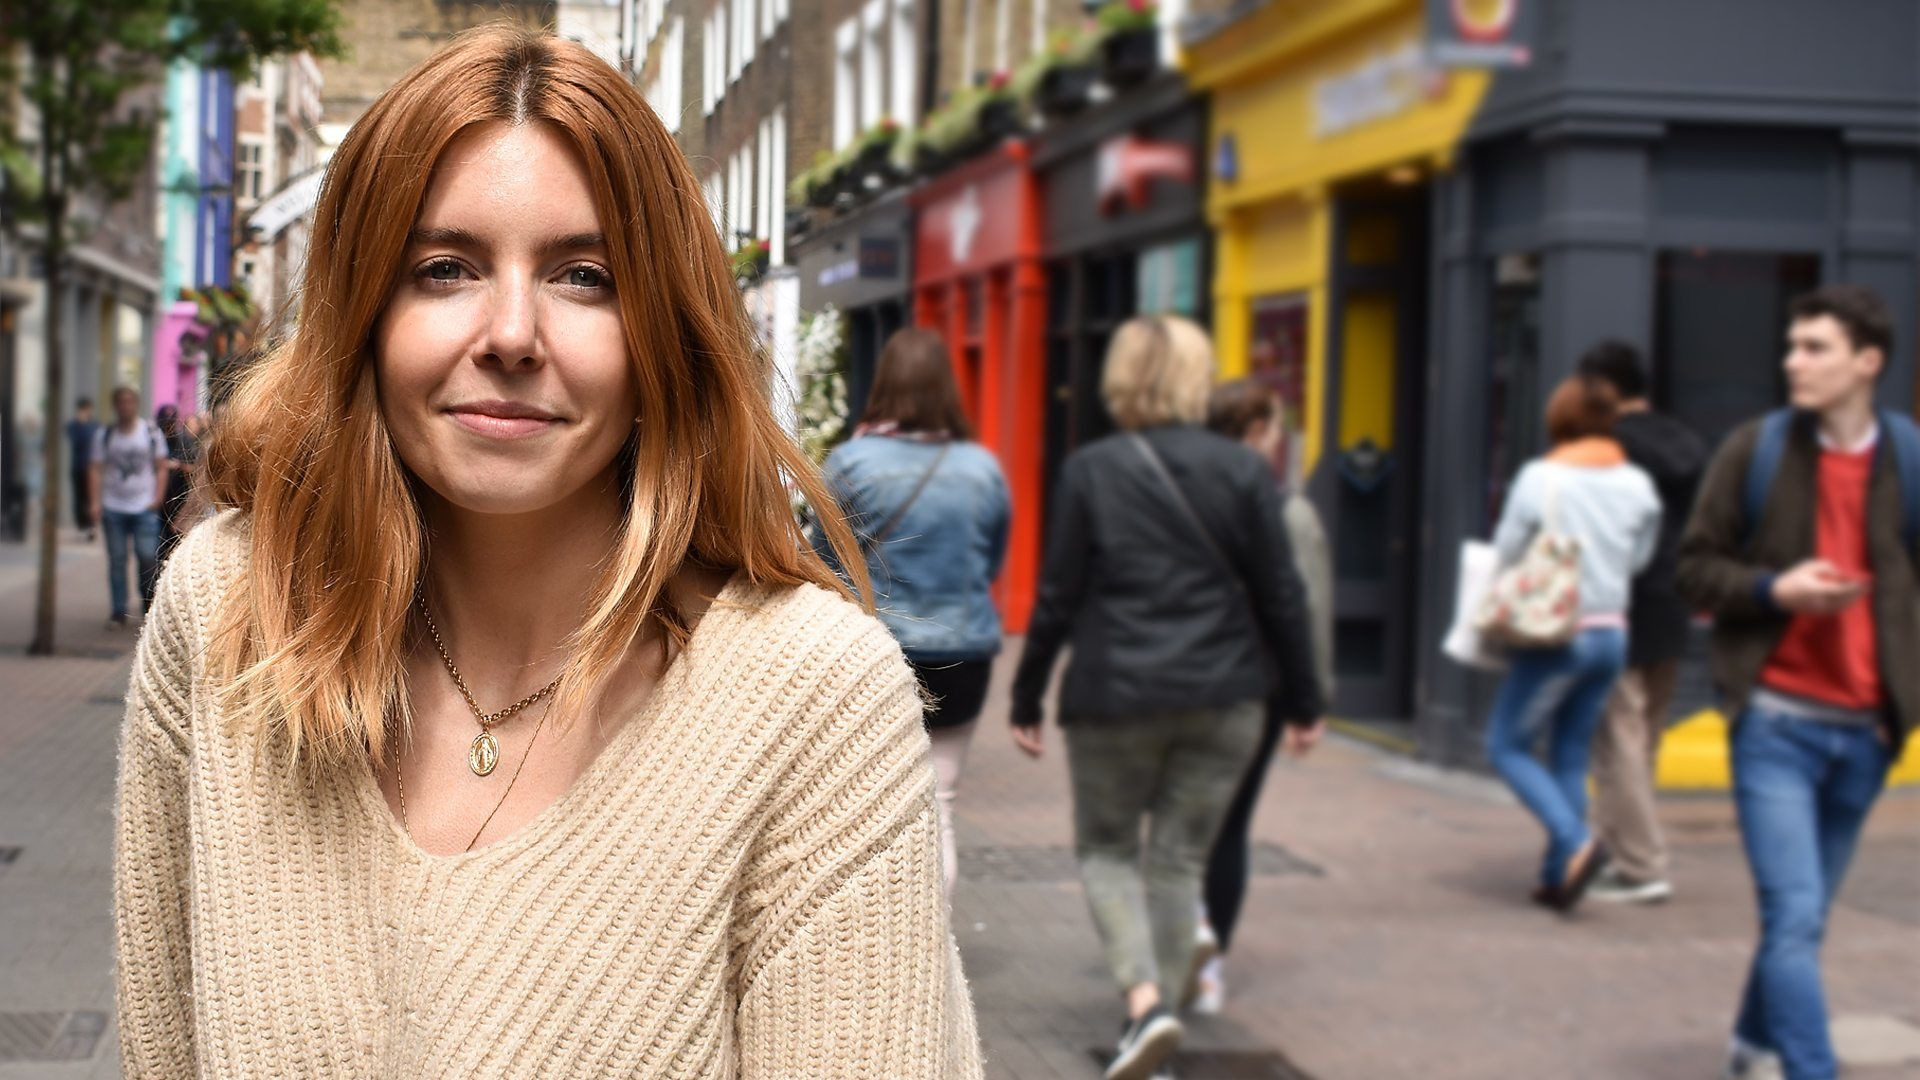 Stacey Dooley Investigates — s07 special-12 — Fashion's Dirty Secrets